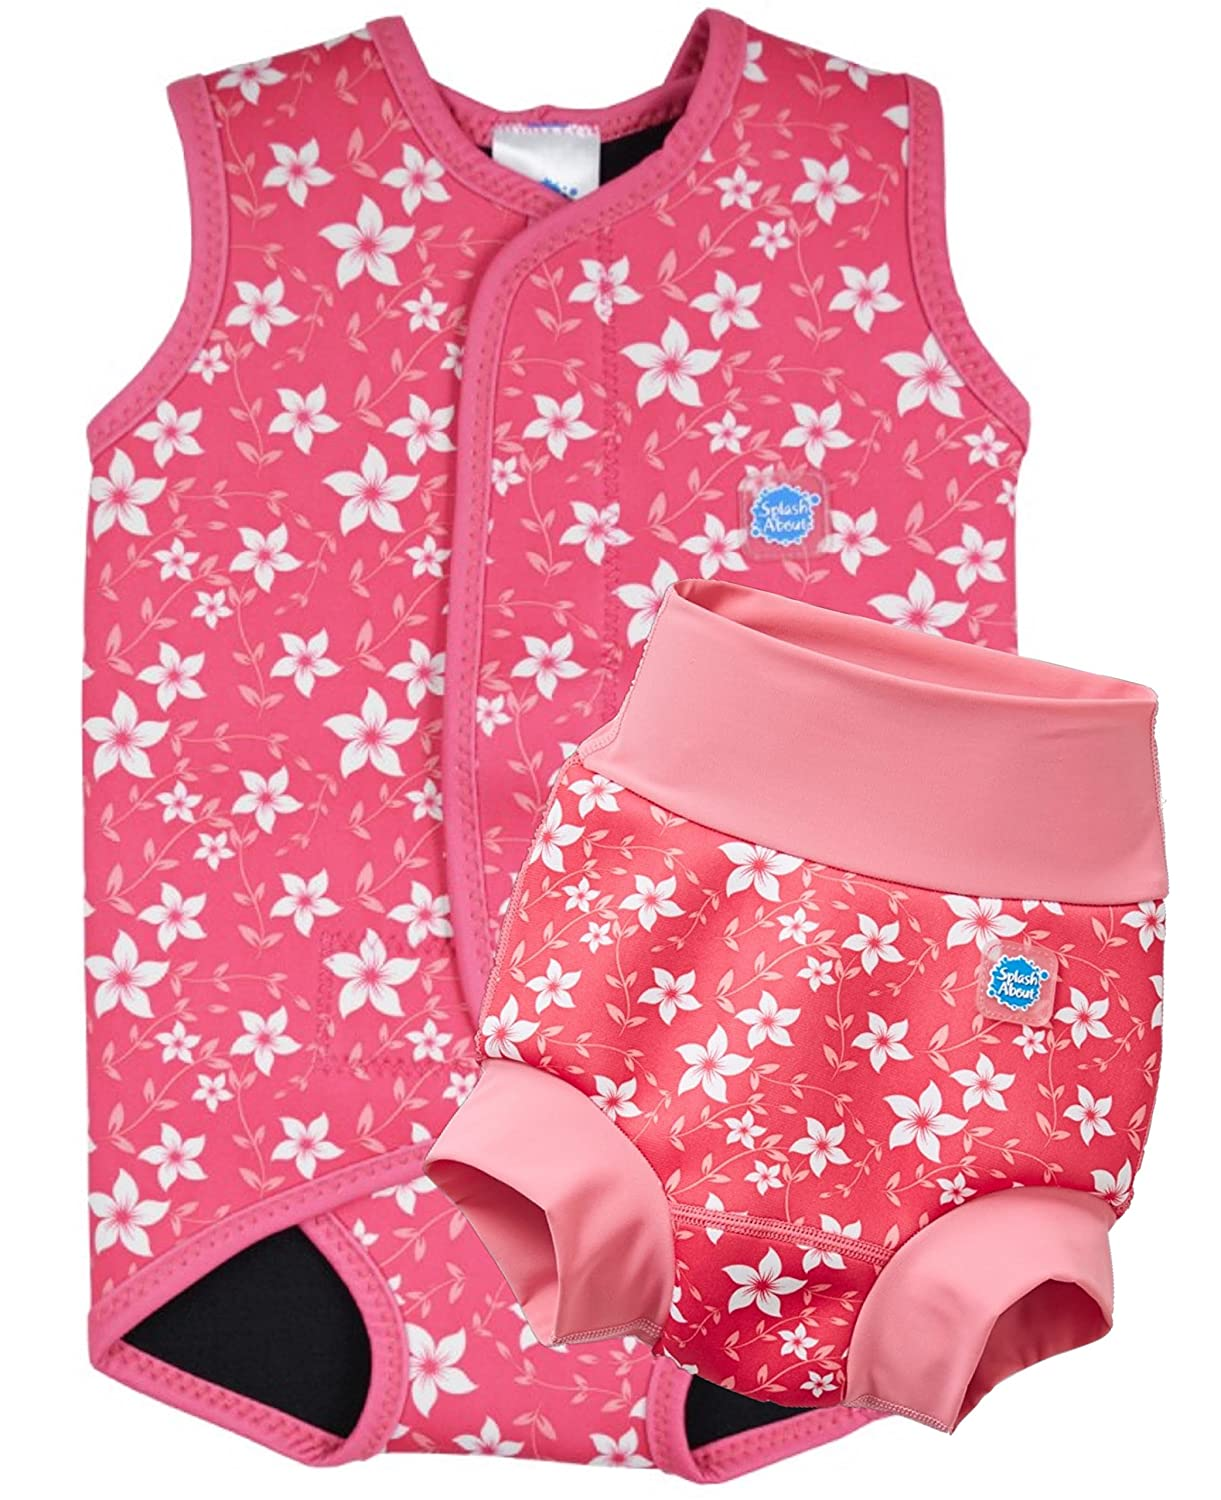 Splash About NEW IMPROVED Happy Nappy and Matching BabyWrap (2-3yrs Nappy 18-30m Wrap, Pink Blossom)